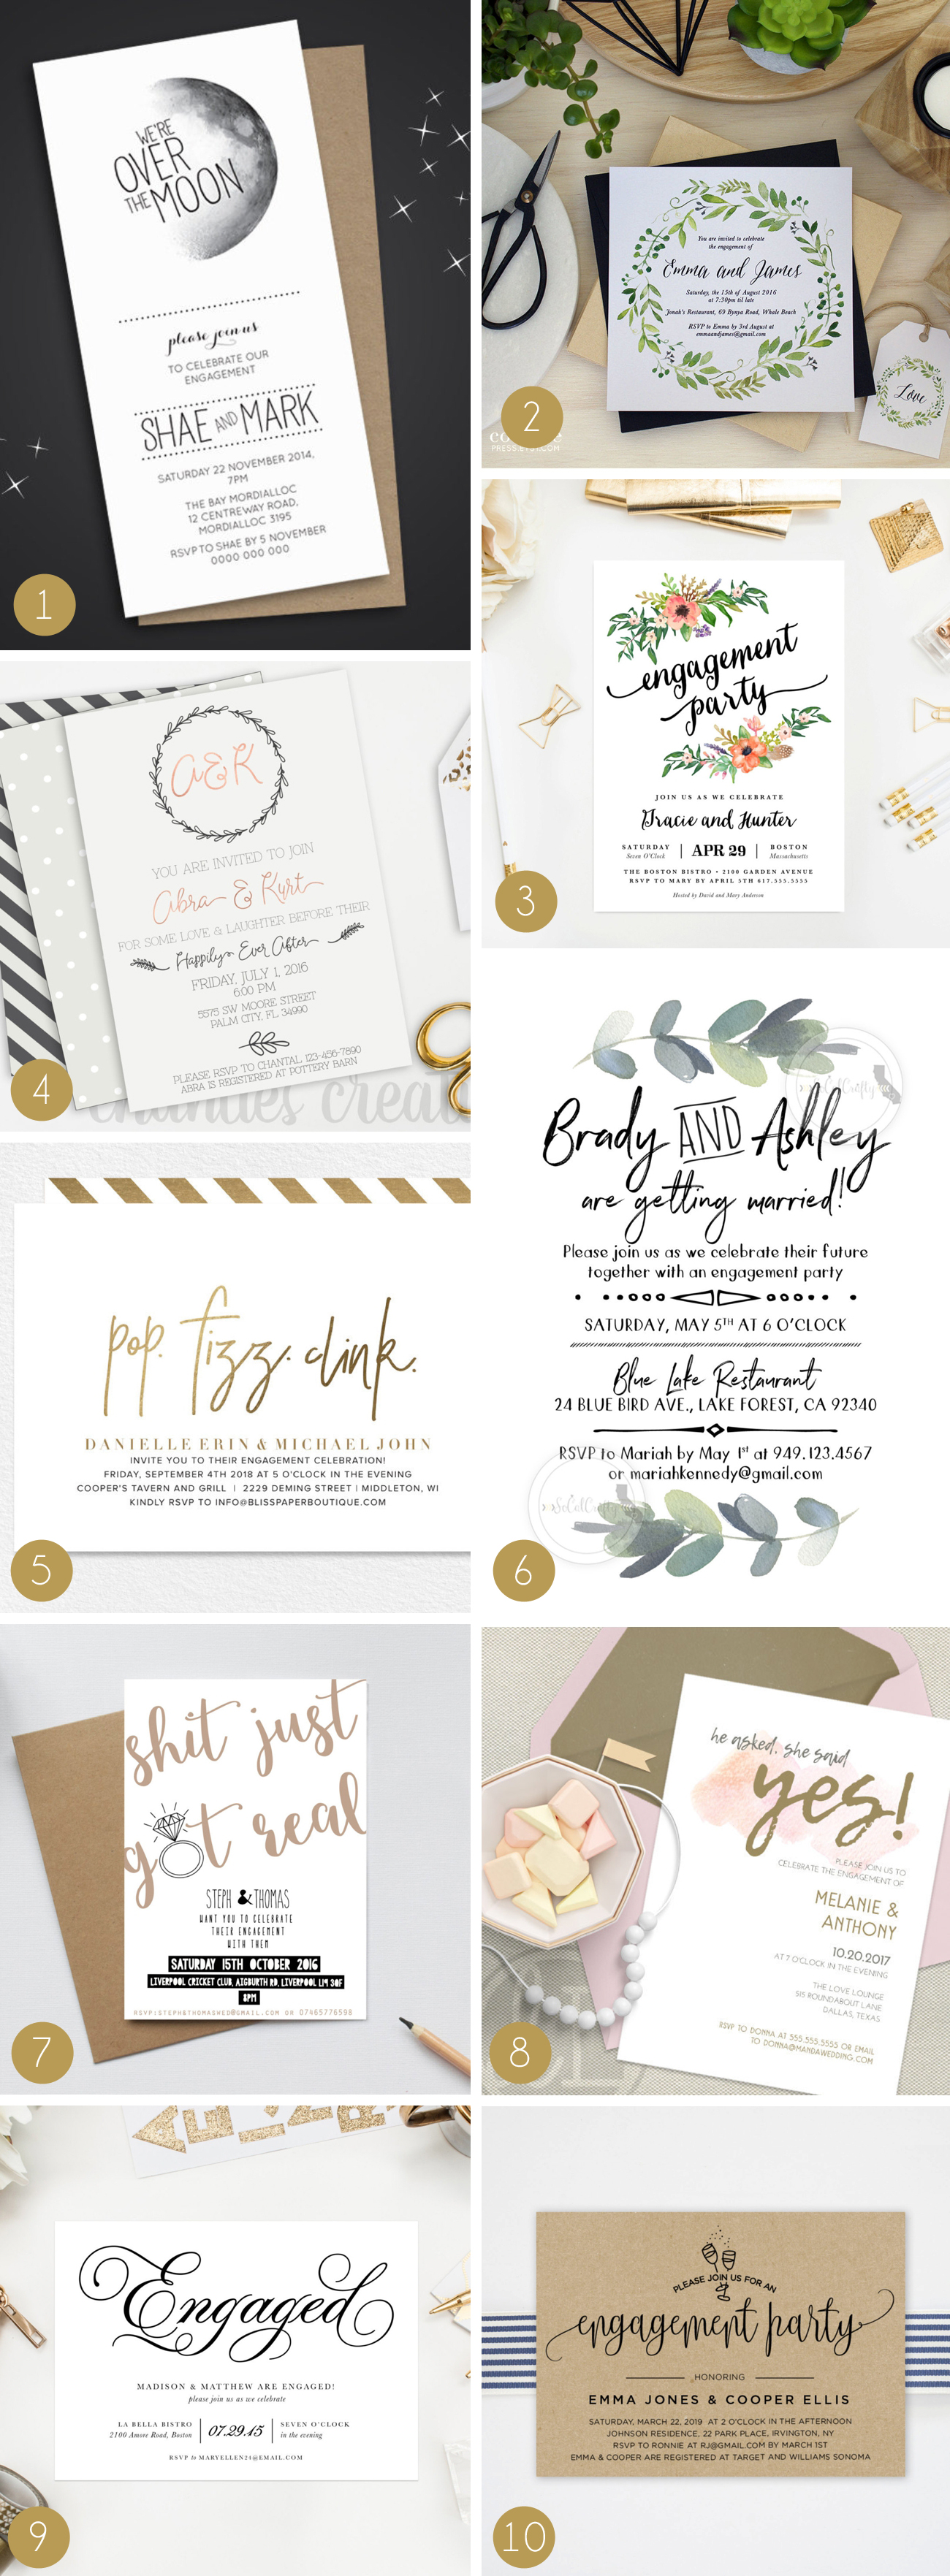 Engagement Party Invitations from Etsy